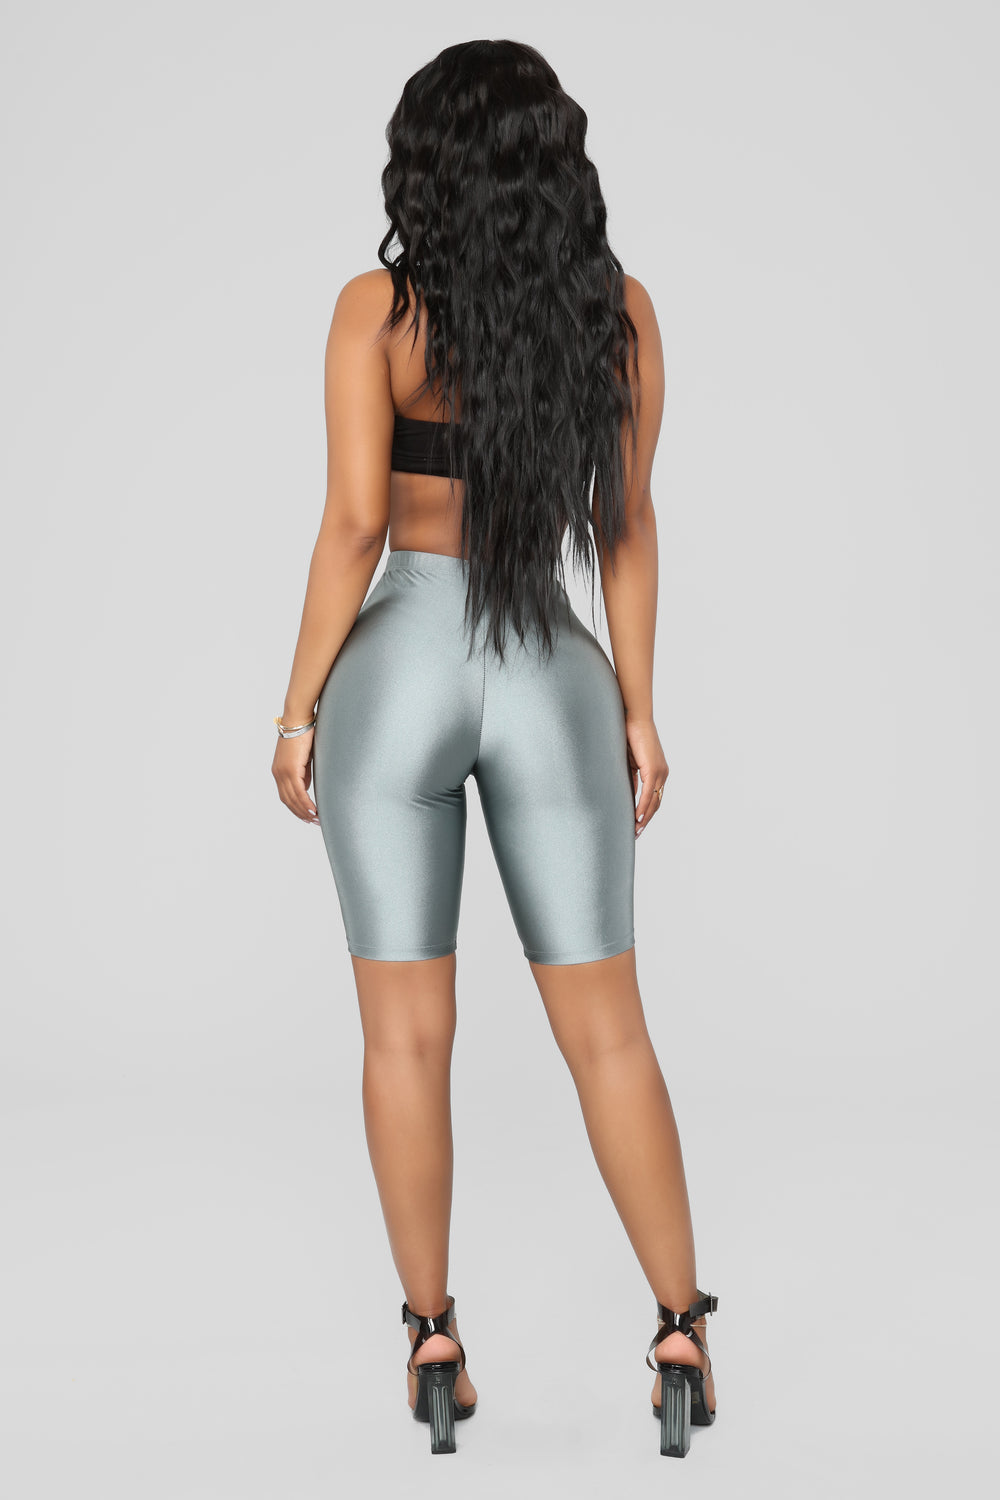 Curves For Days Biker Shorts - Silver